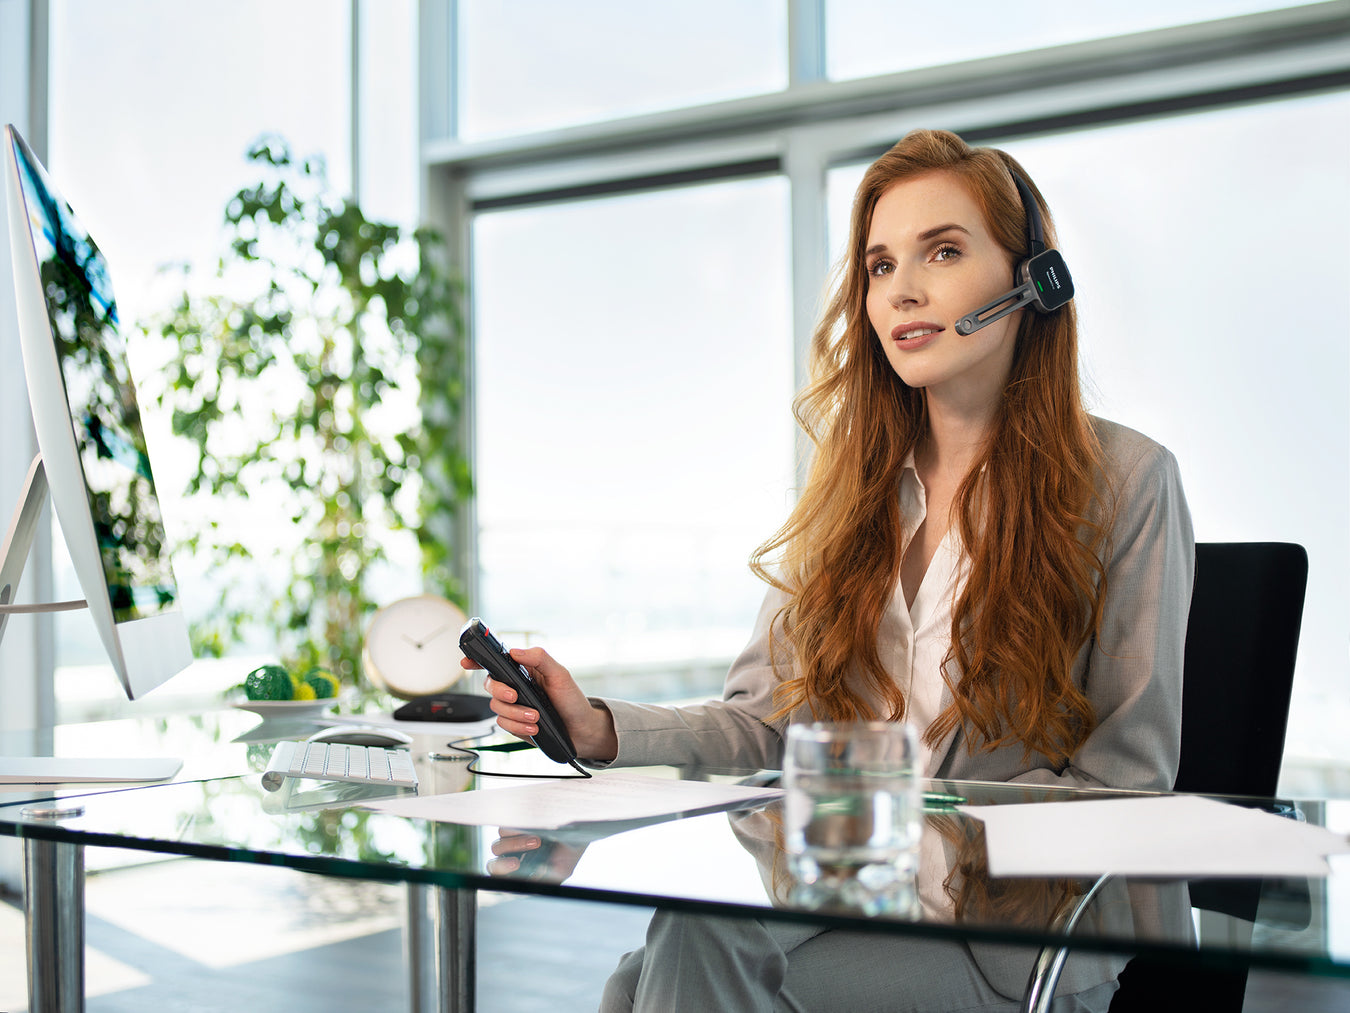 Speech Products by Speak-IT Solutions - Philips and Nuance Professional Dictation & Speech Recognition Solutions - Philips SpeechOne Wireless Speech Recognition Headset